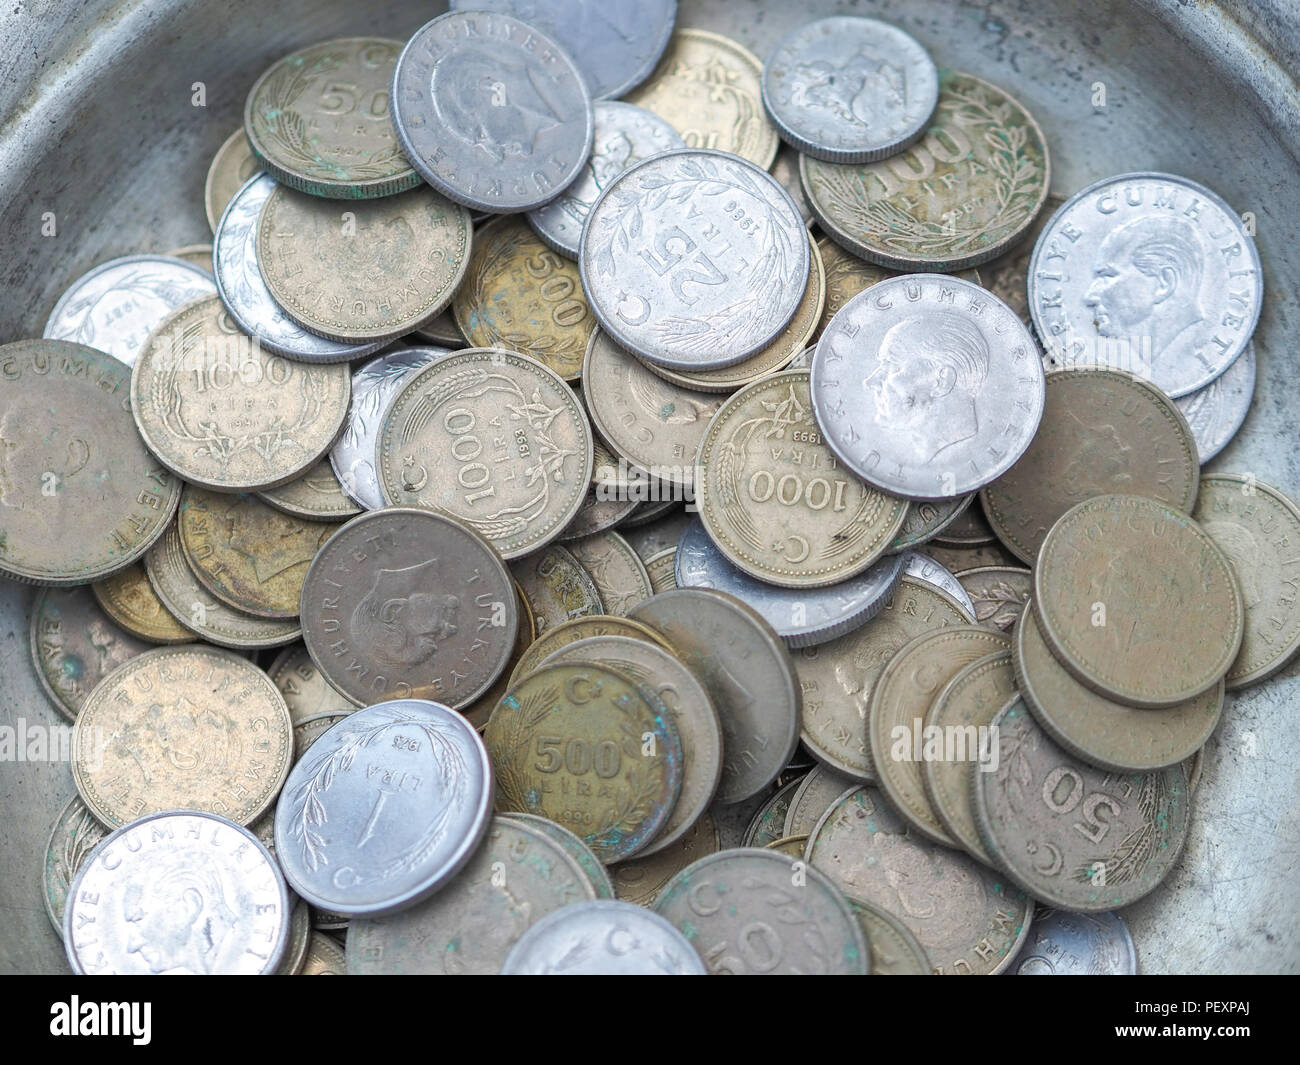 old turkish coins in the metal plate Stock Photo